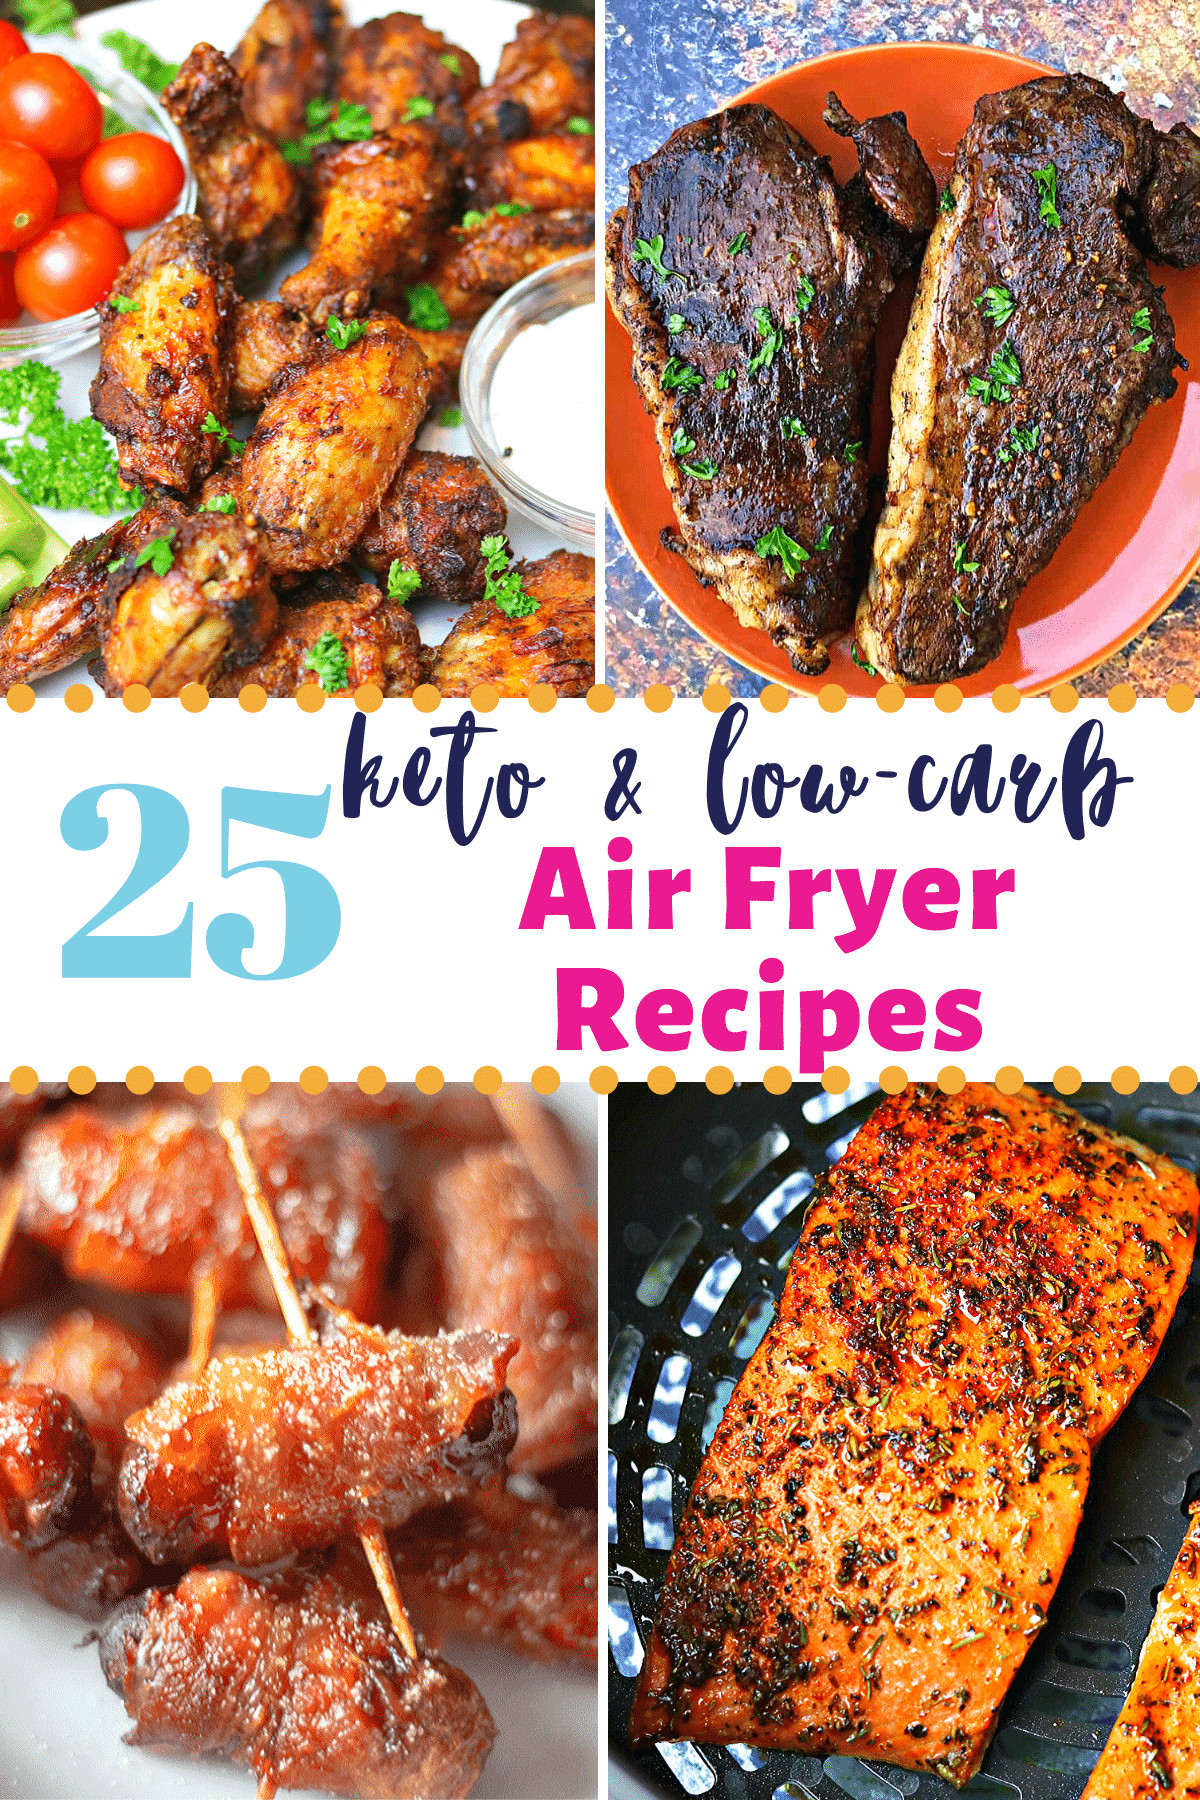 Air Fryer Keto Dinner  25 Easy Low carb & Keto Air Fryer Recipes for Every Meal